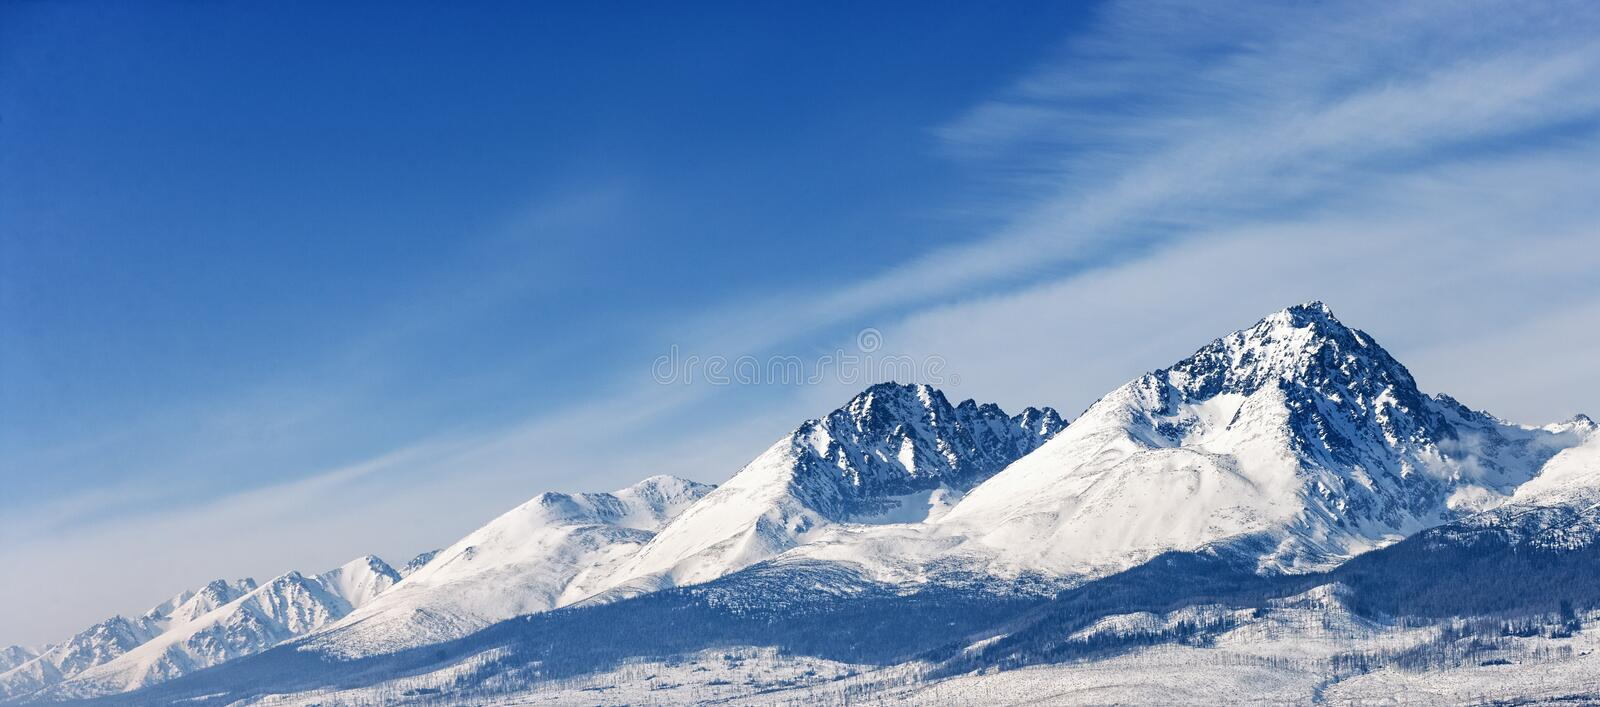 Dramatic Peaks Pinnacles Snowy Summits High Altitude Mountain Pa Stock Images